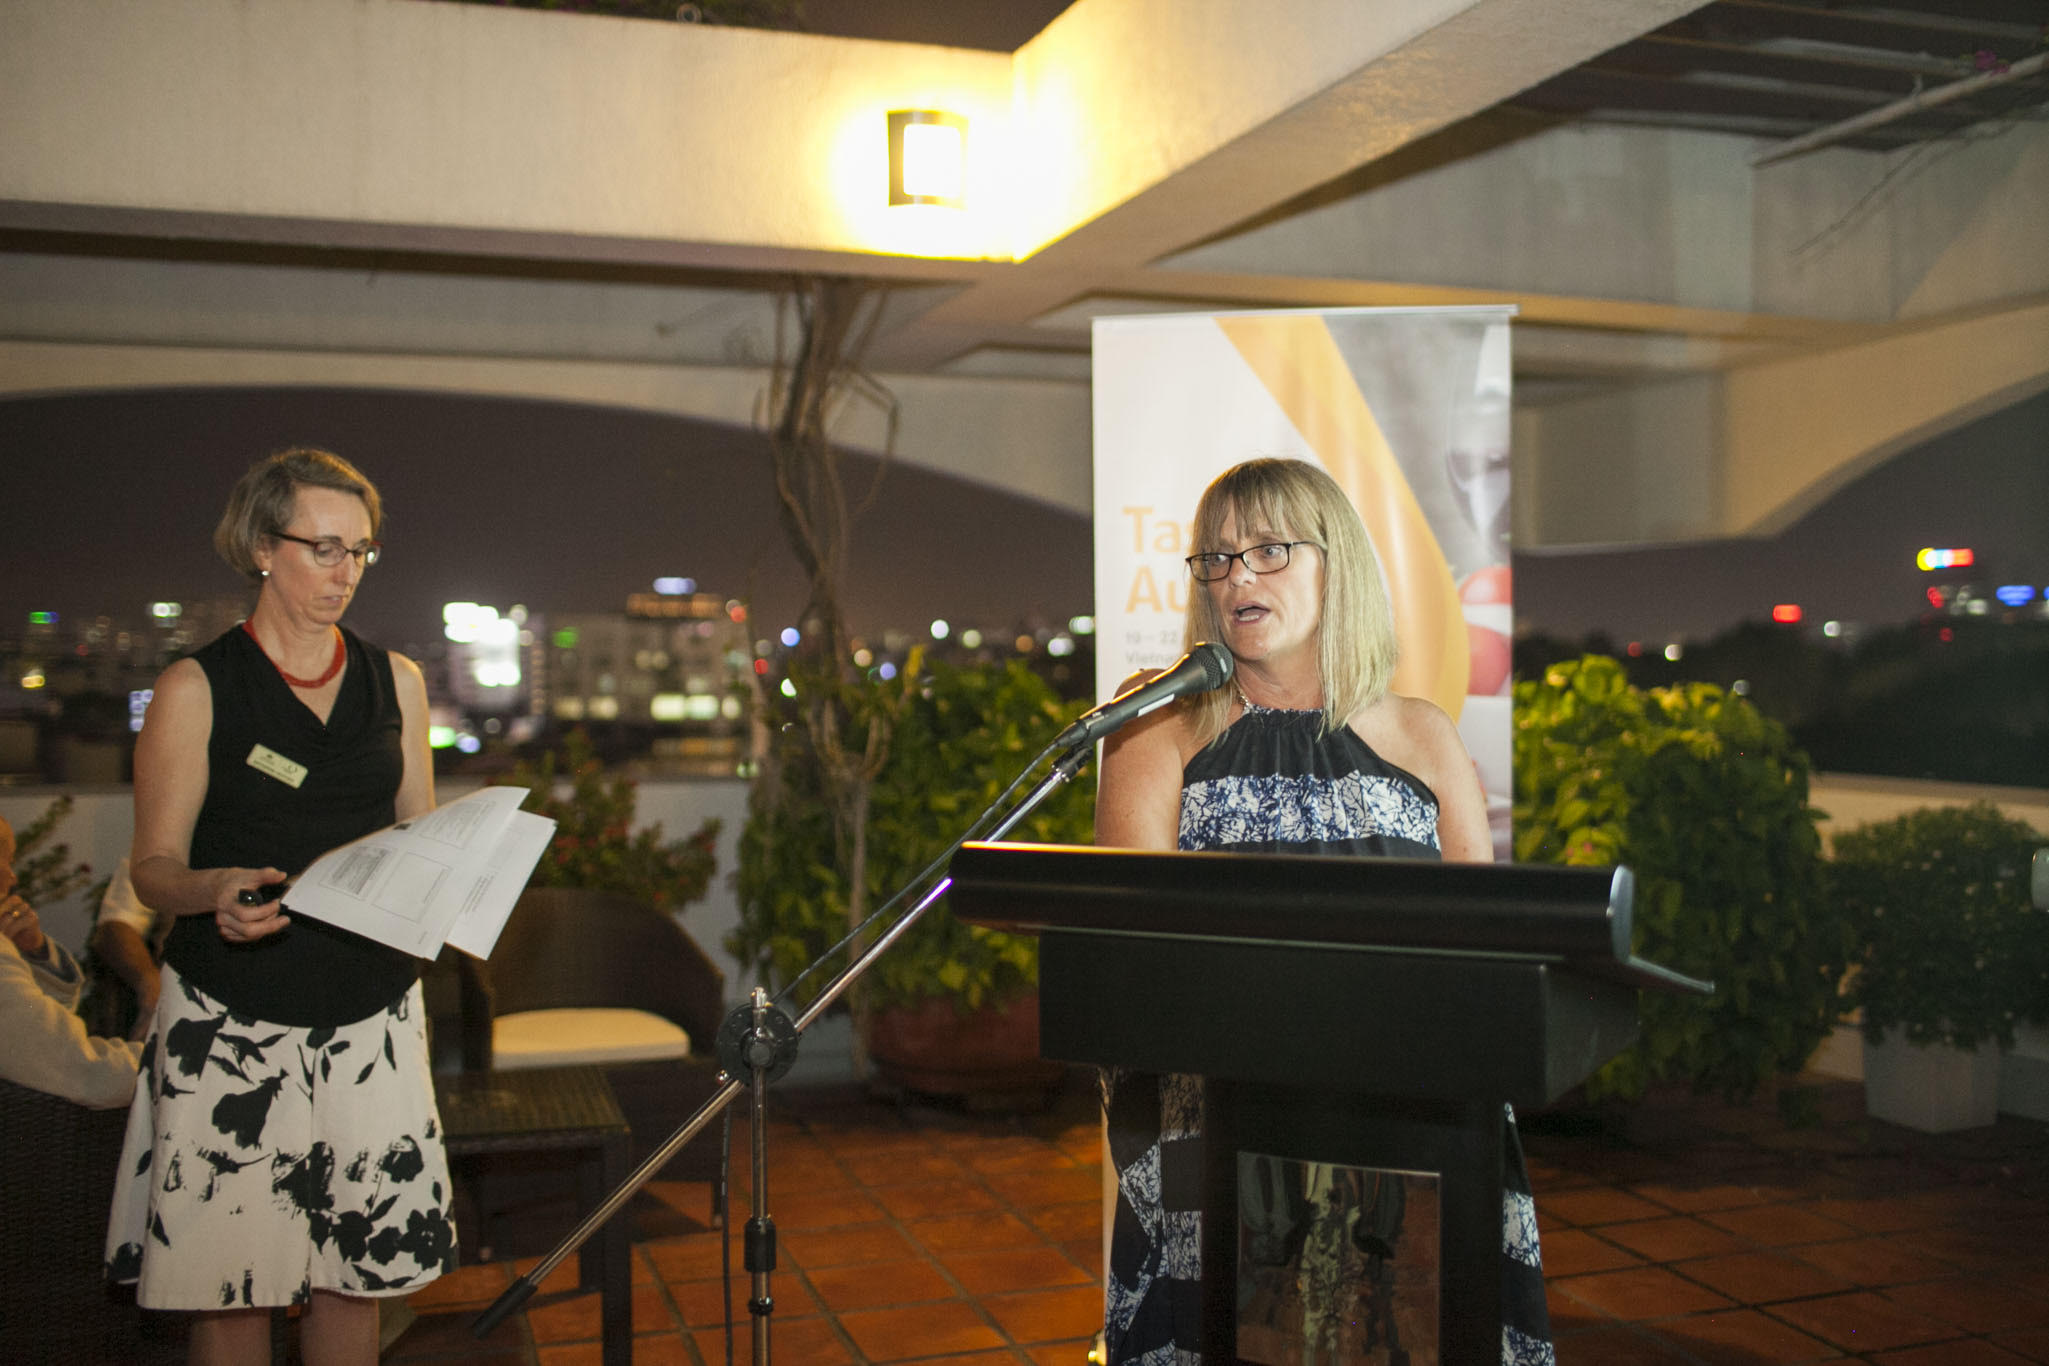 Taste of Australia 2016 launches in Ho Chi Minh City